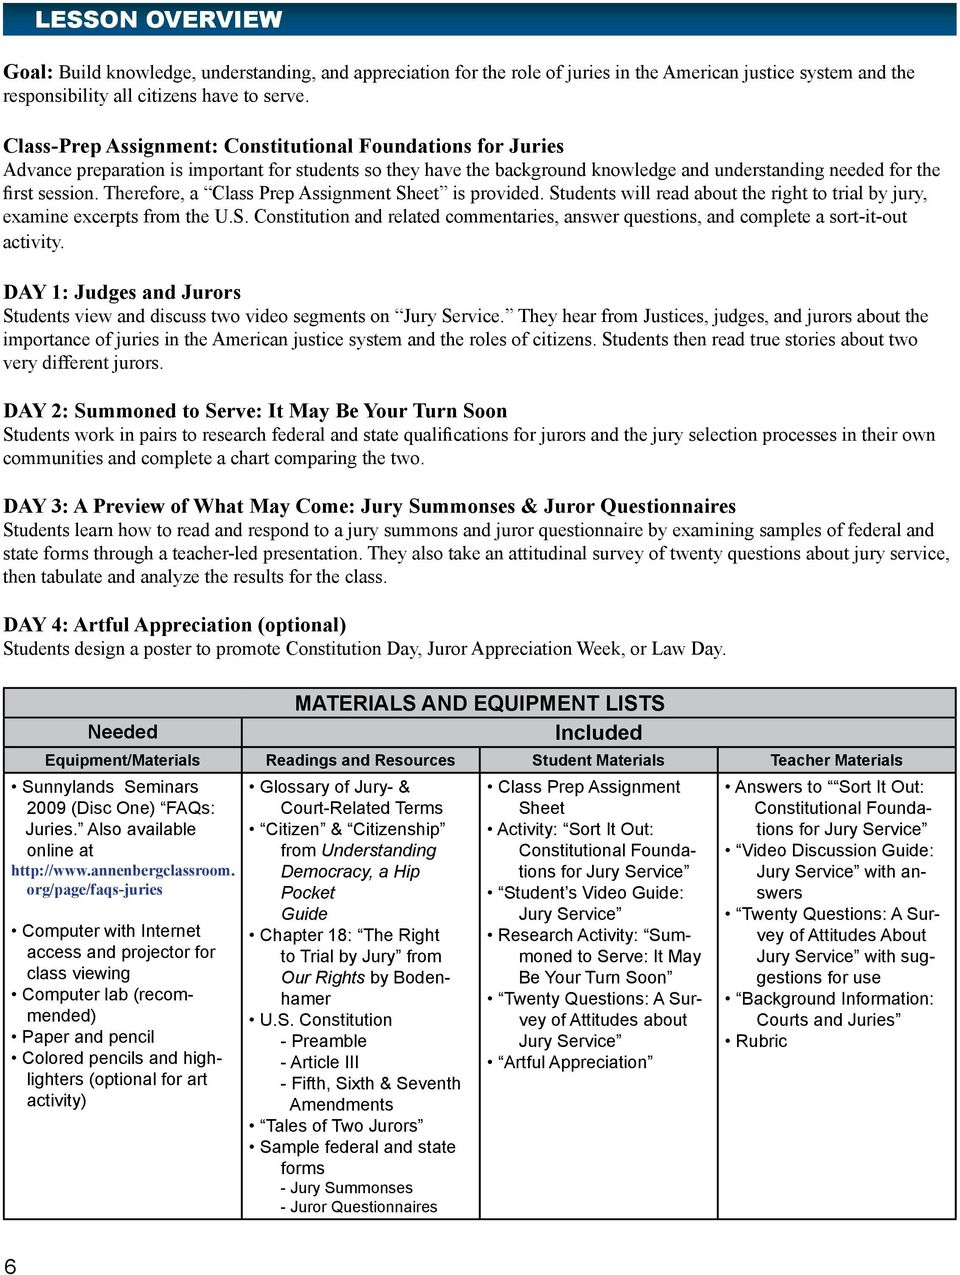 essay analytical writing environmental issues